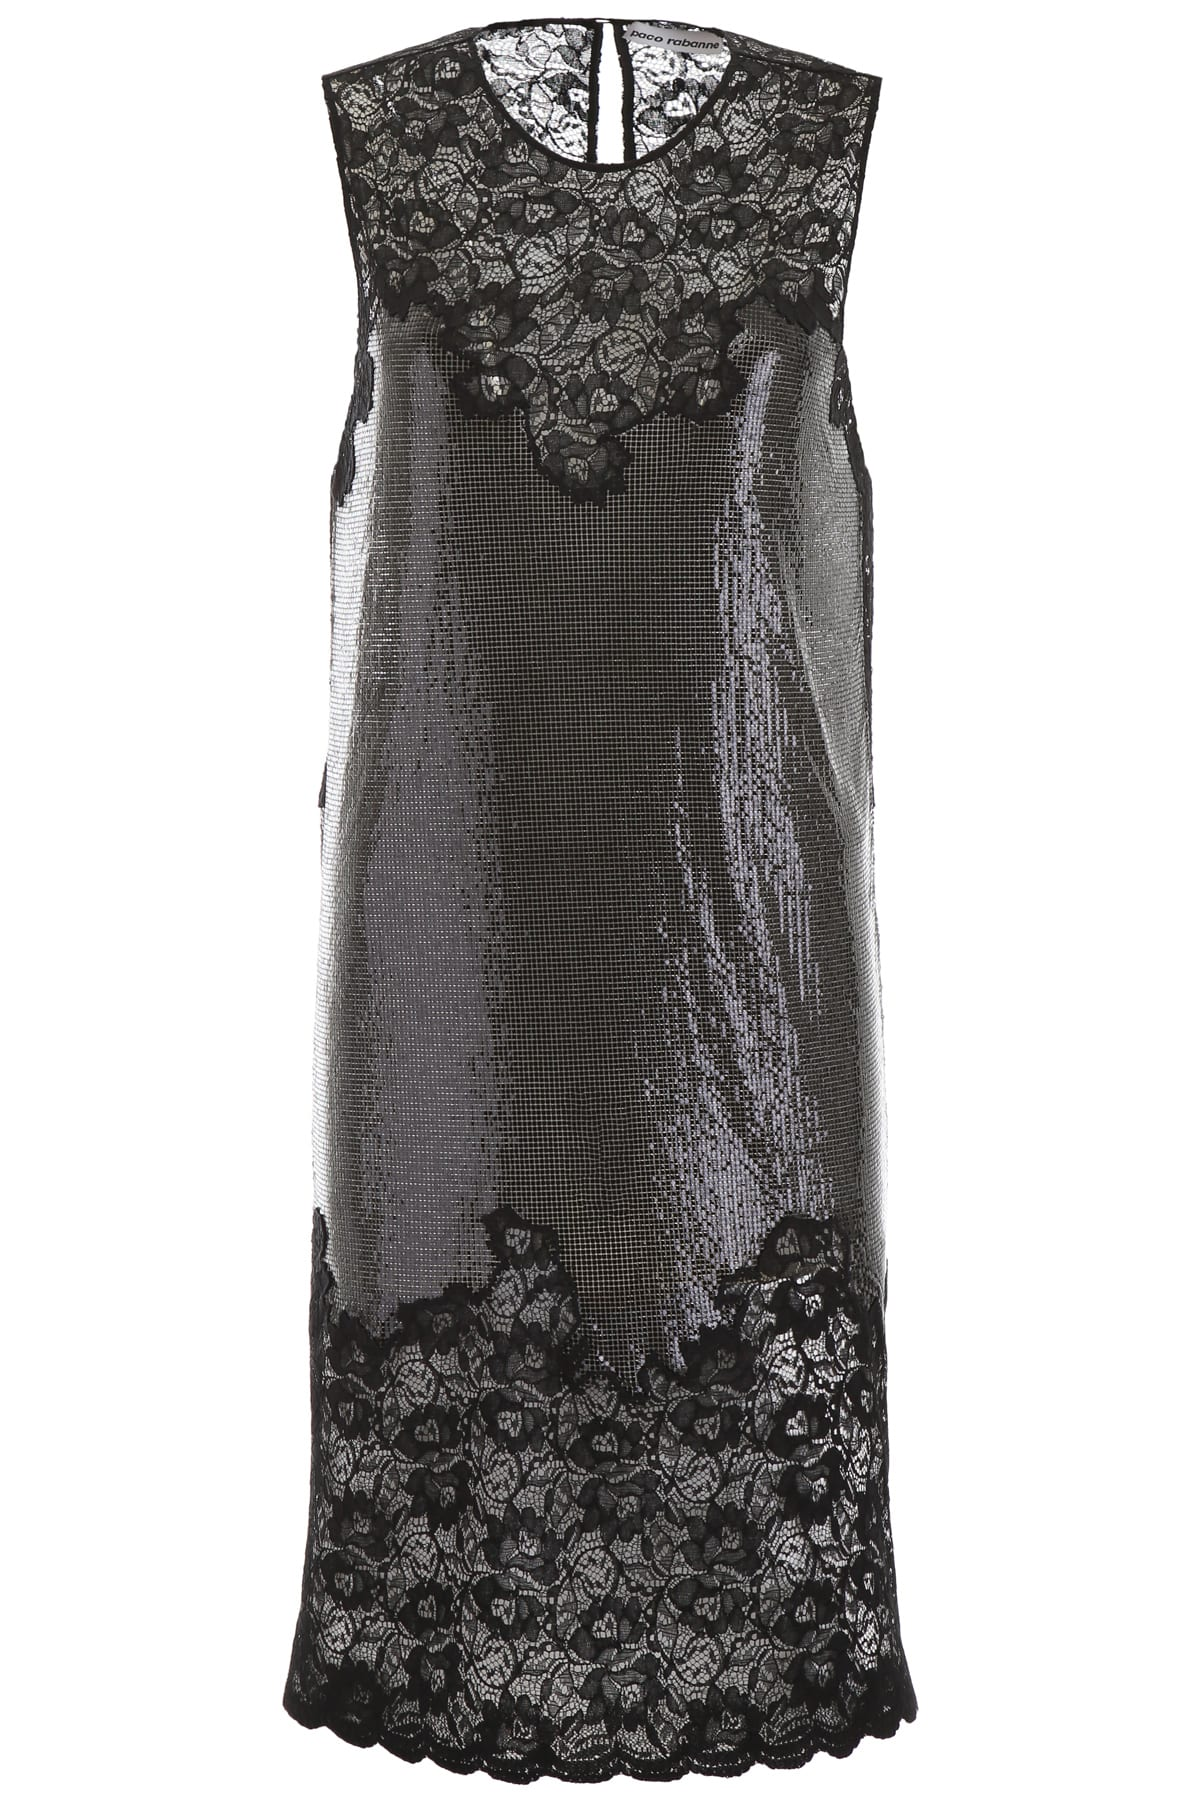 Paco Rabanne Chainmail Dress With Lace